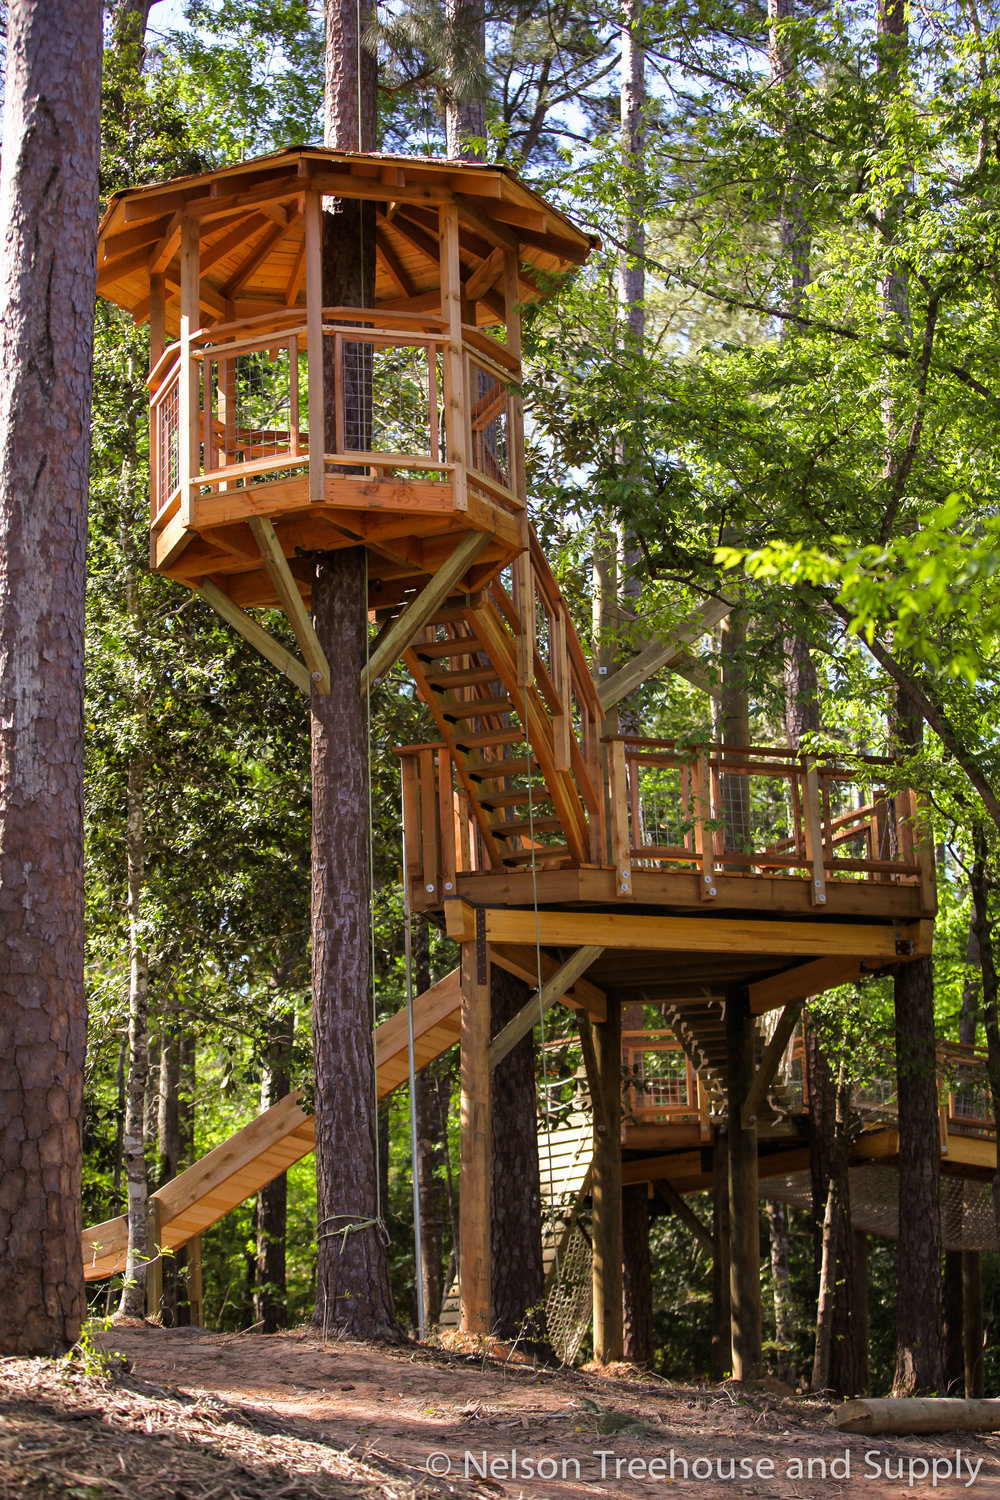 cho yeh summer camp treehouse - Treehouse